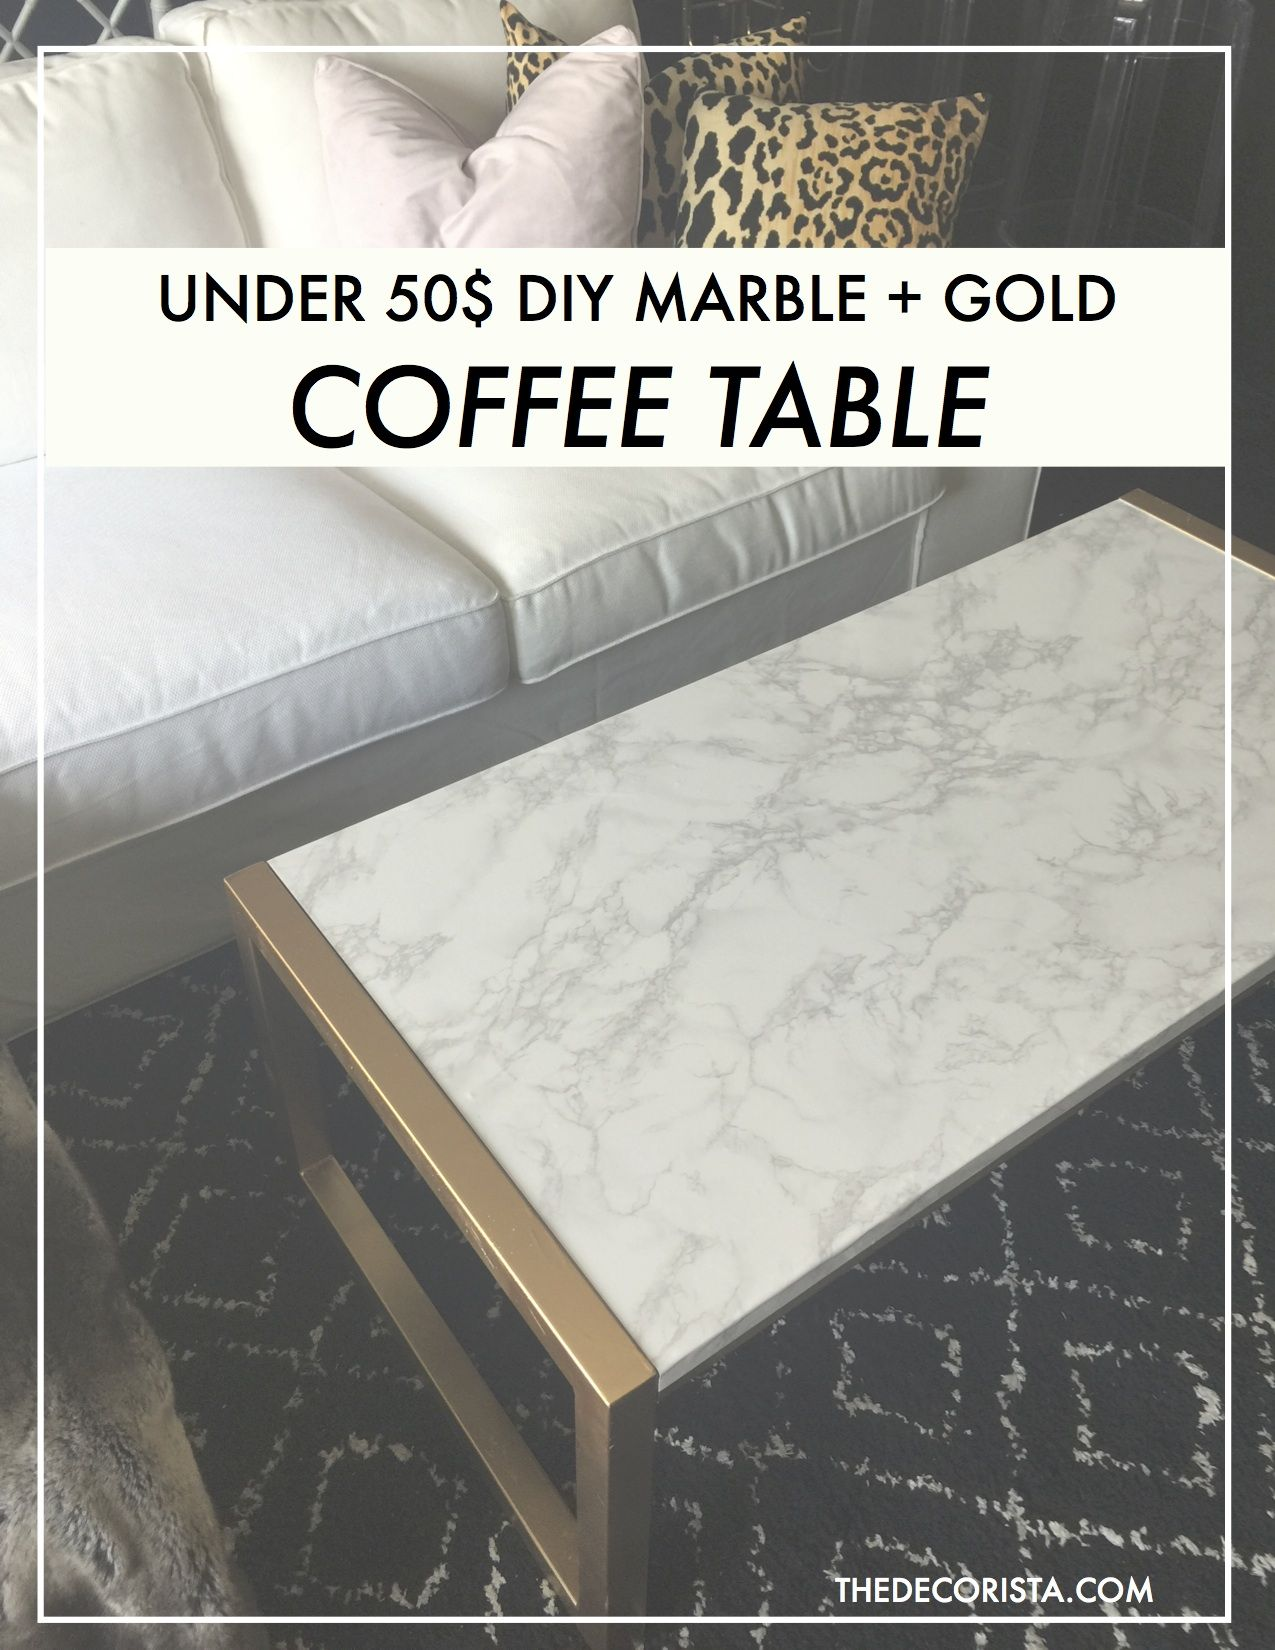 Get the look Marble gold coffee table under 50$